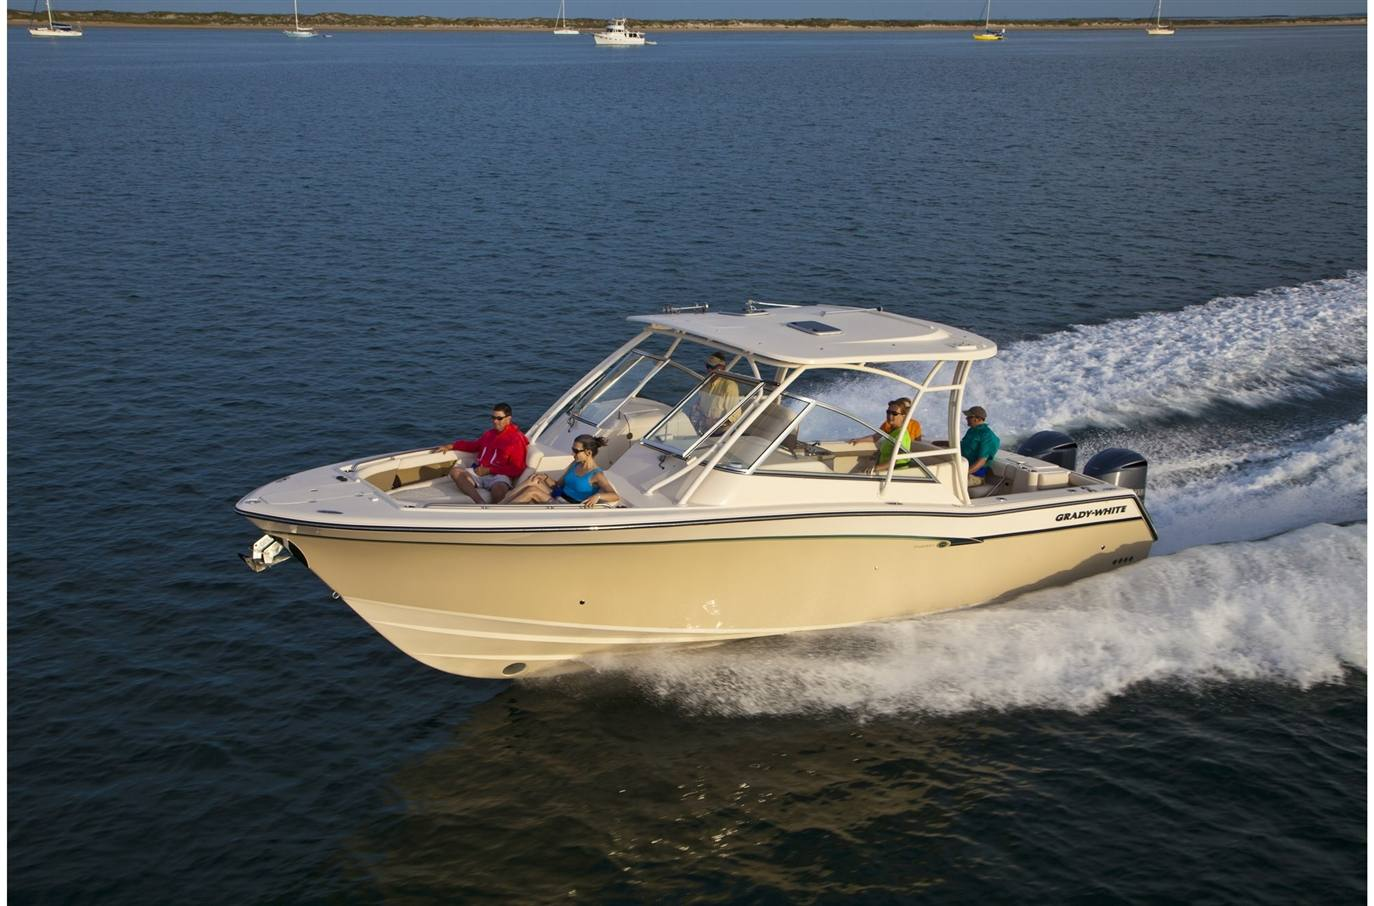 2018 Grady-White Freedom 335 for sale in Naples, FL  Naples Boat